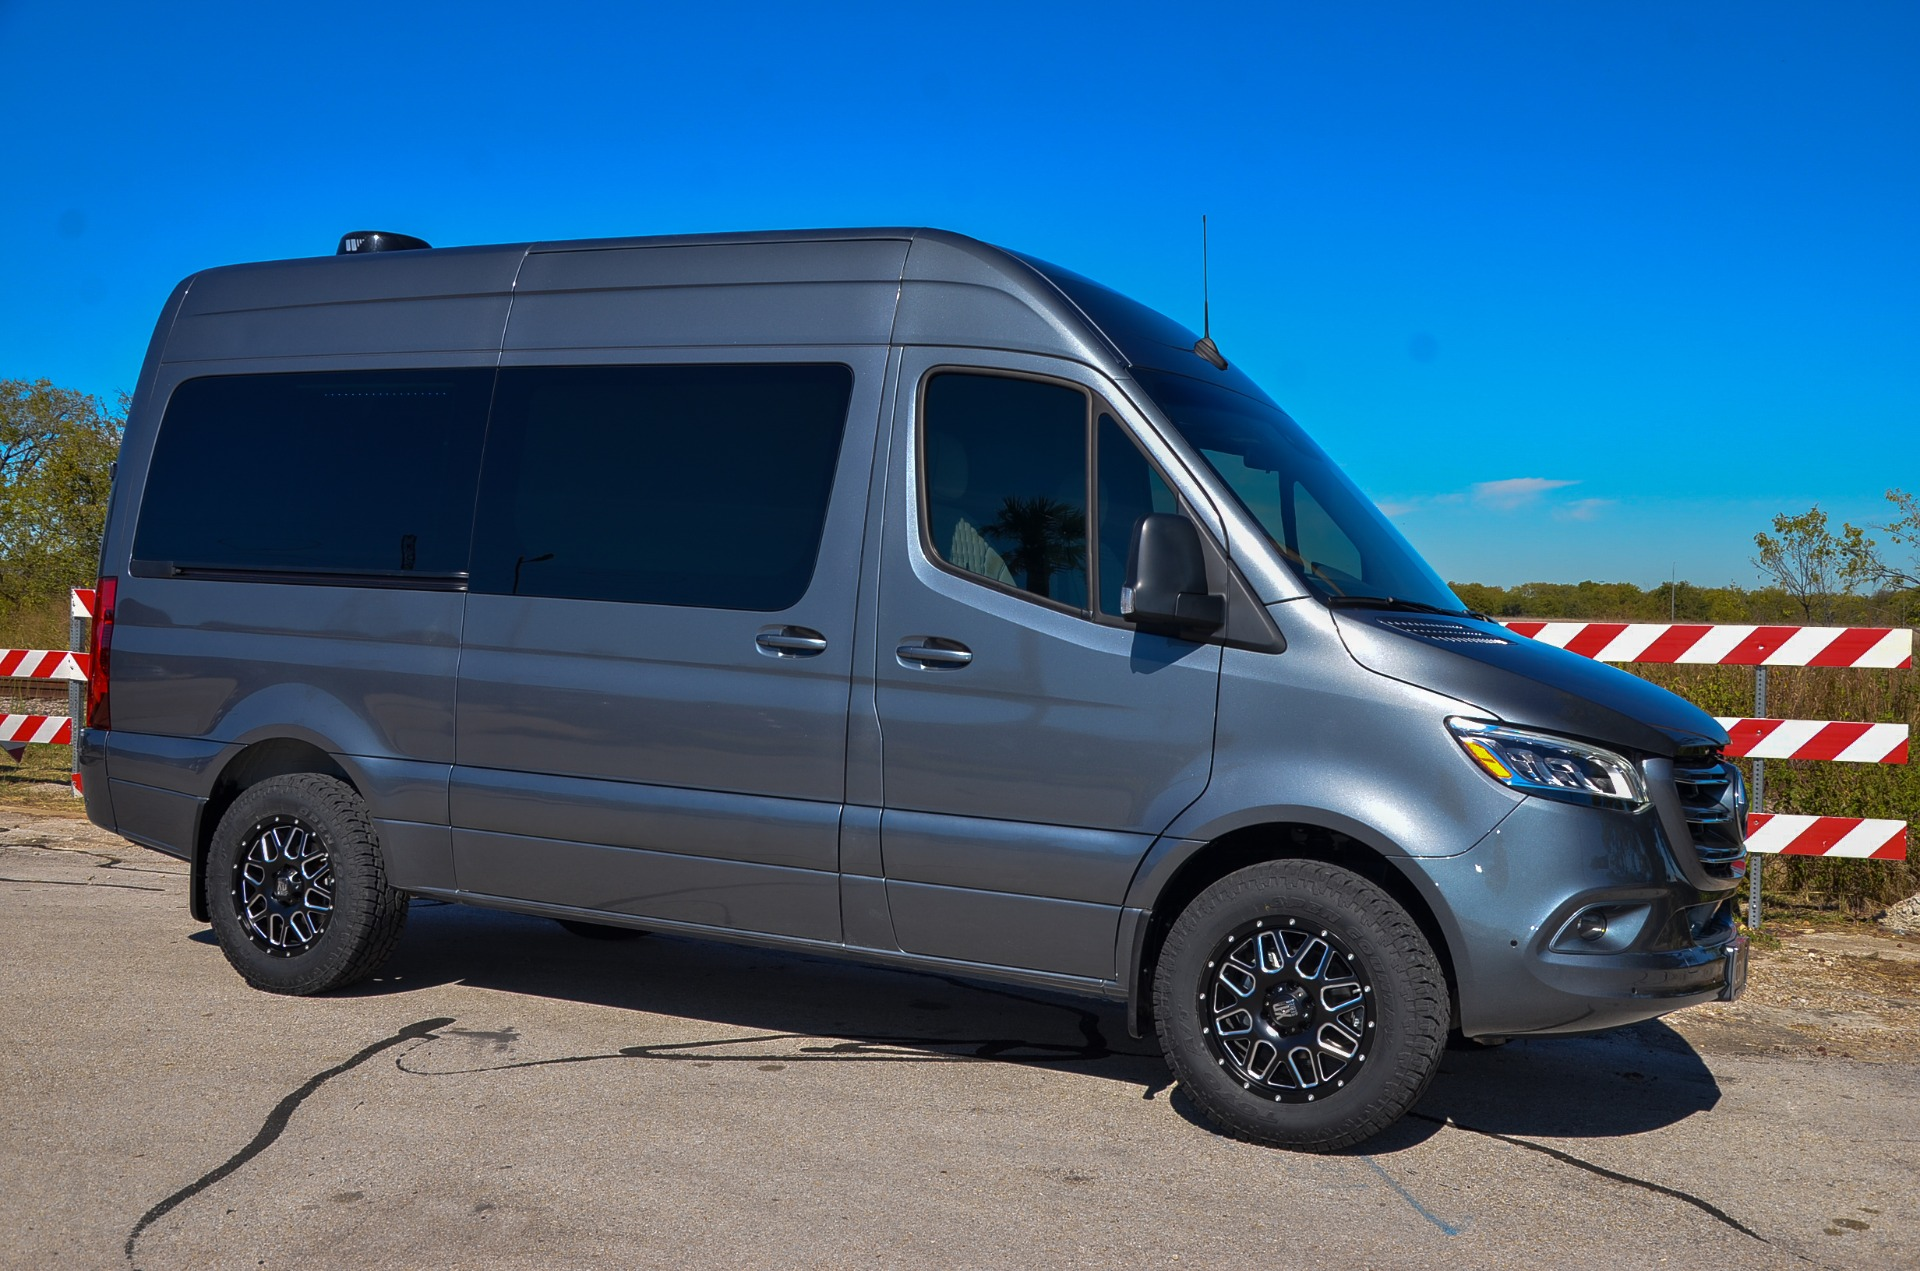 New 2020 Mercedes-Benz 144 Sprinter Metro Day Lounge D4FLEX 2500- 4 Passenger for sale Sold at Iconic Sprinters in Fort Worth TX 76106 1